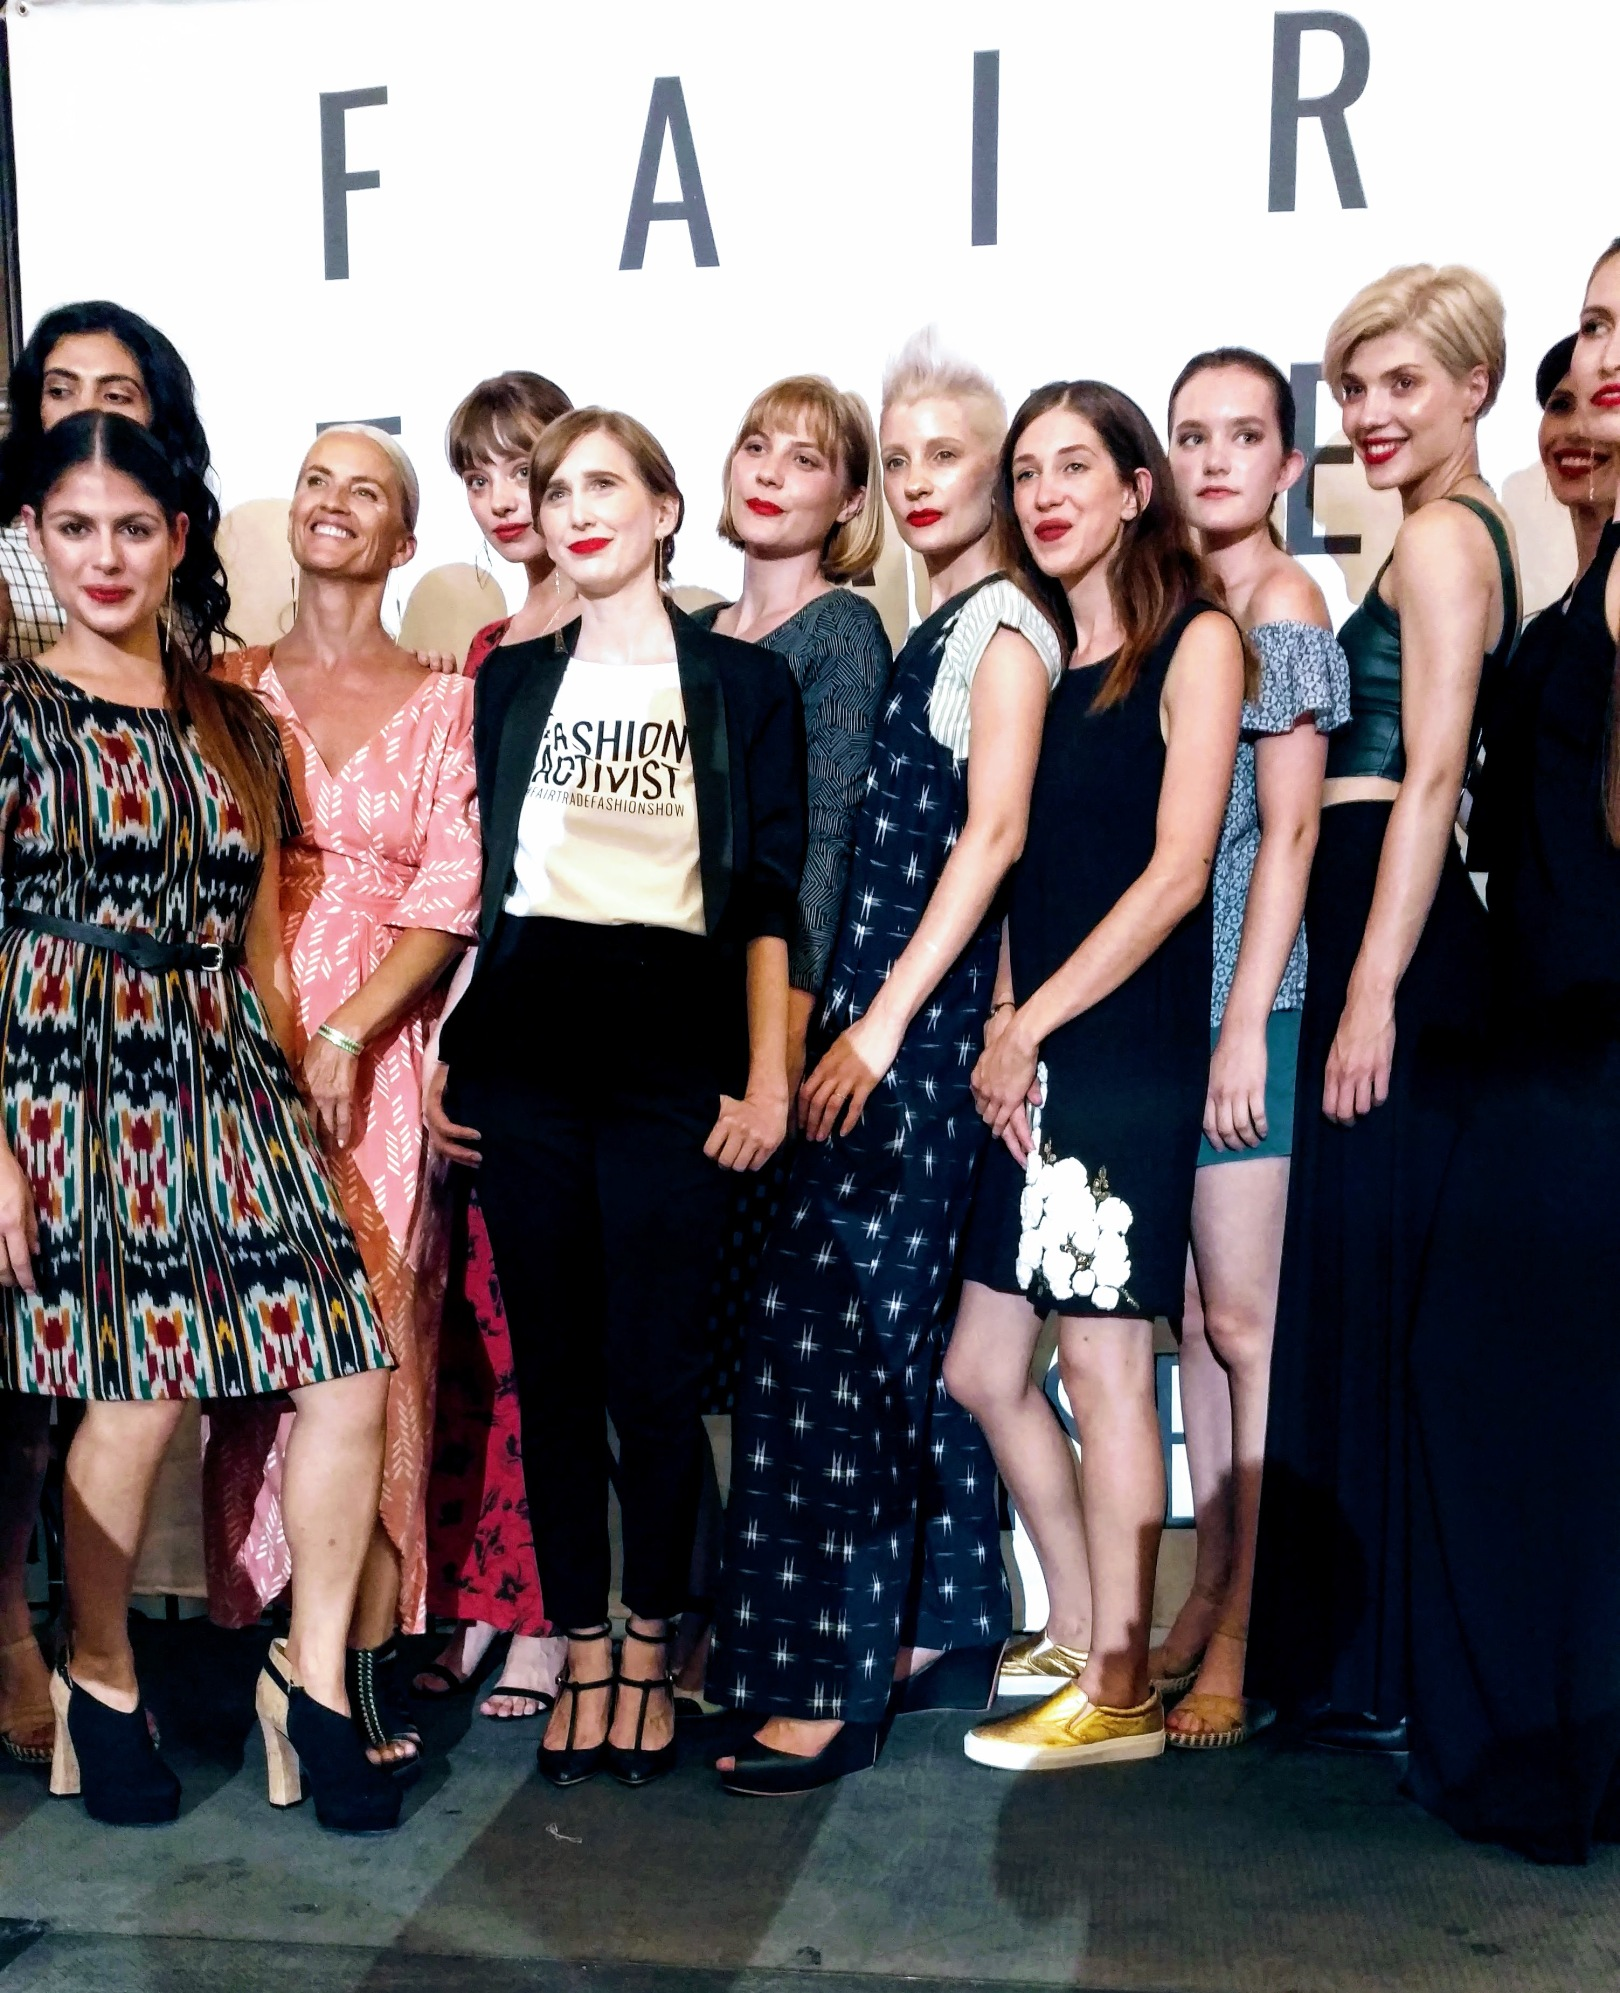 Fair Trade Fashion Show, Los Angeles 2017, Post Show with models and founder Sica Schmitz, photo Rhonda P. Hill